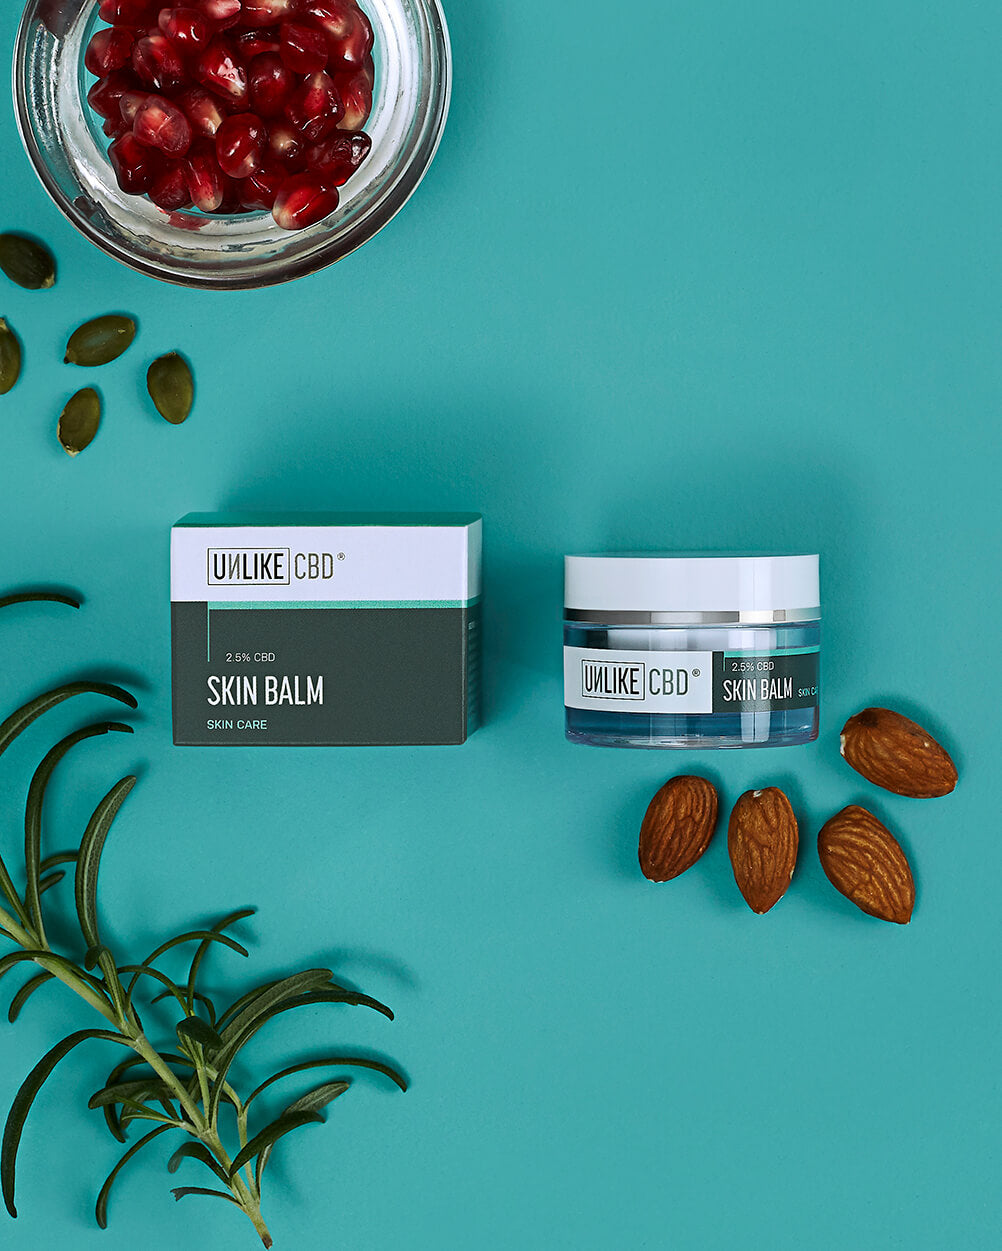 Skin Balm (2.5%, 375mg CBD) | 15ml